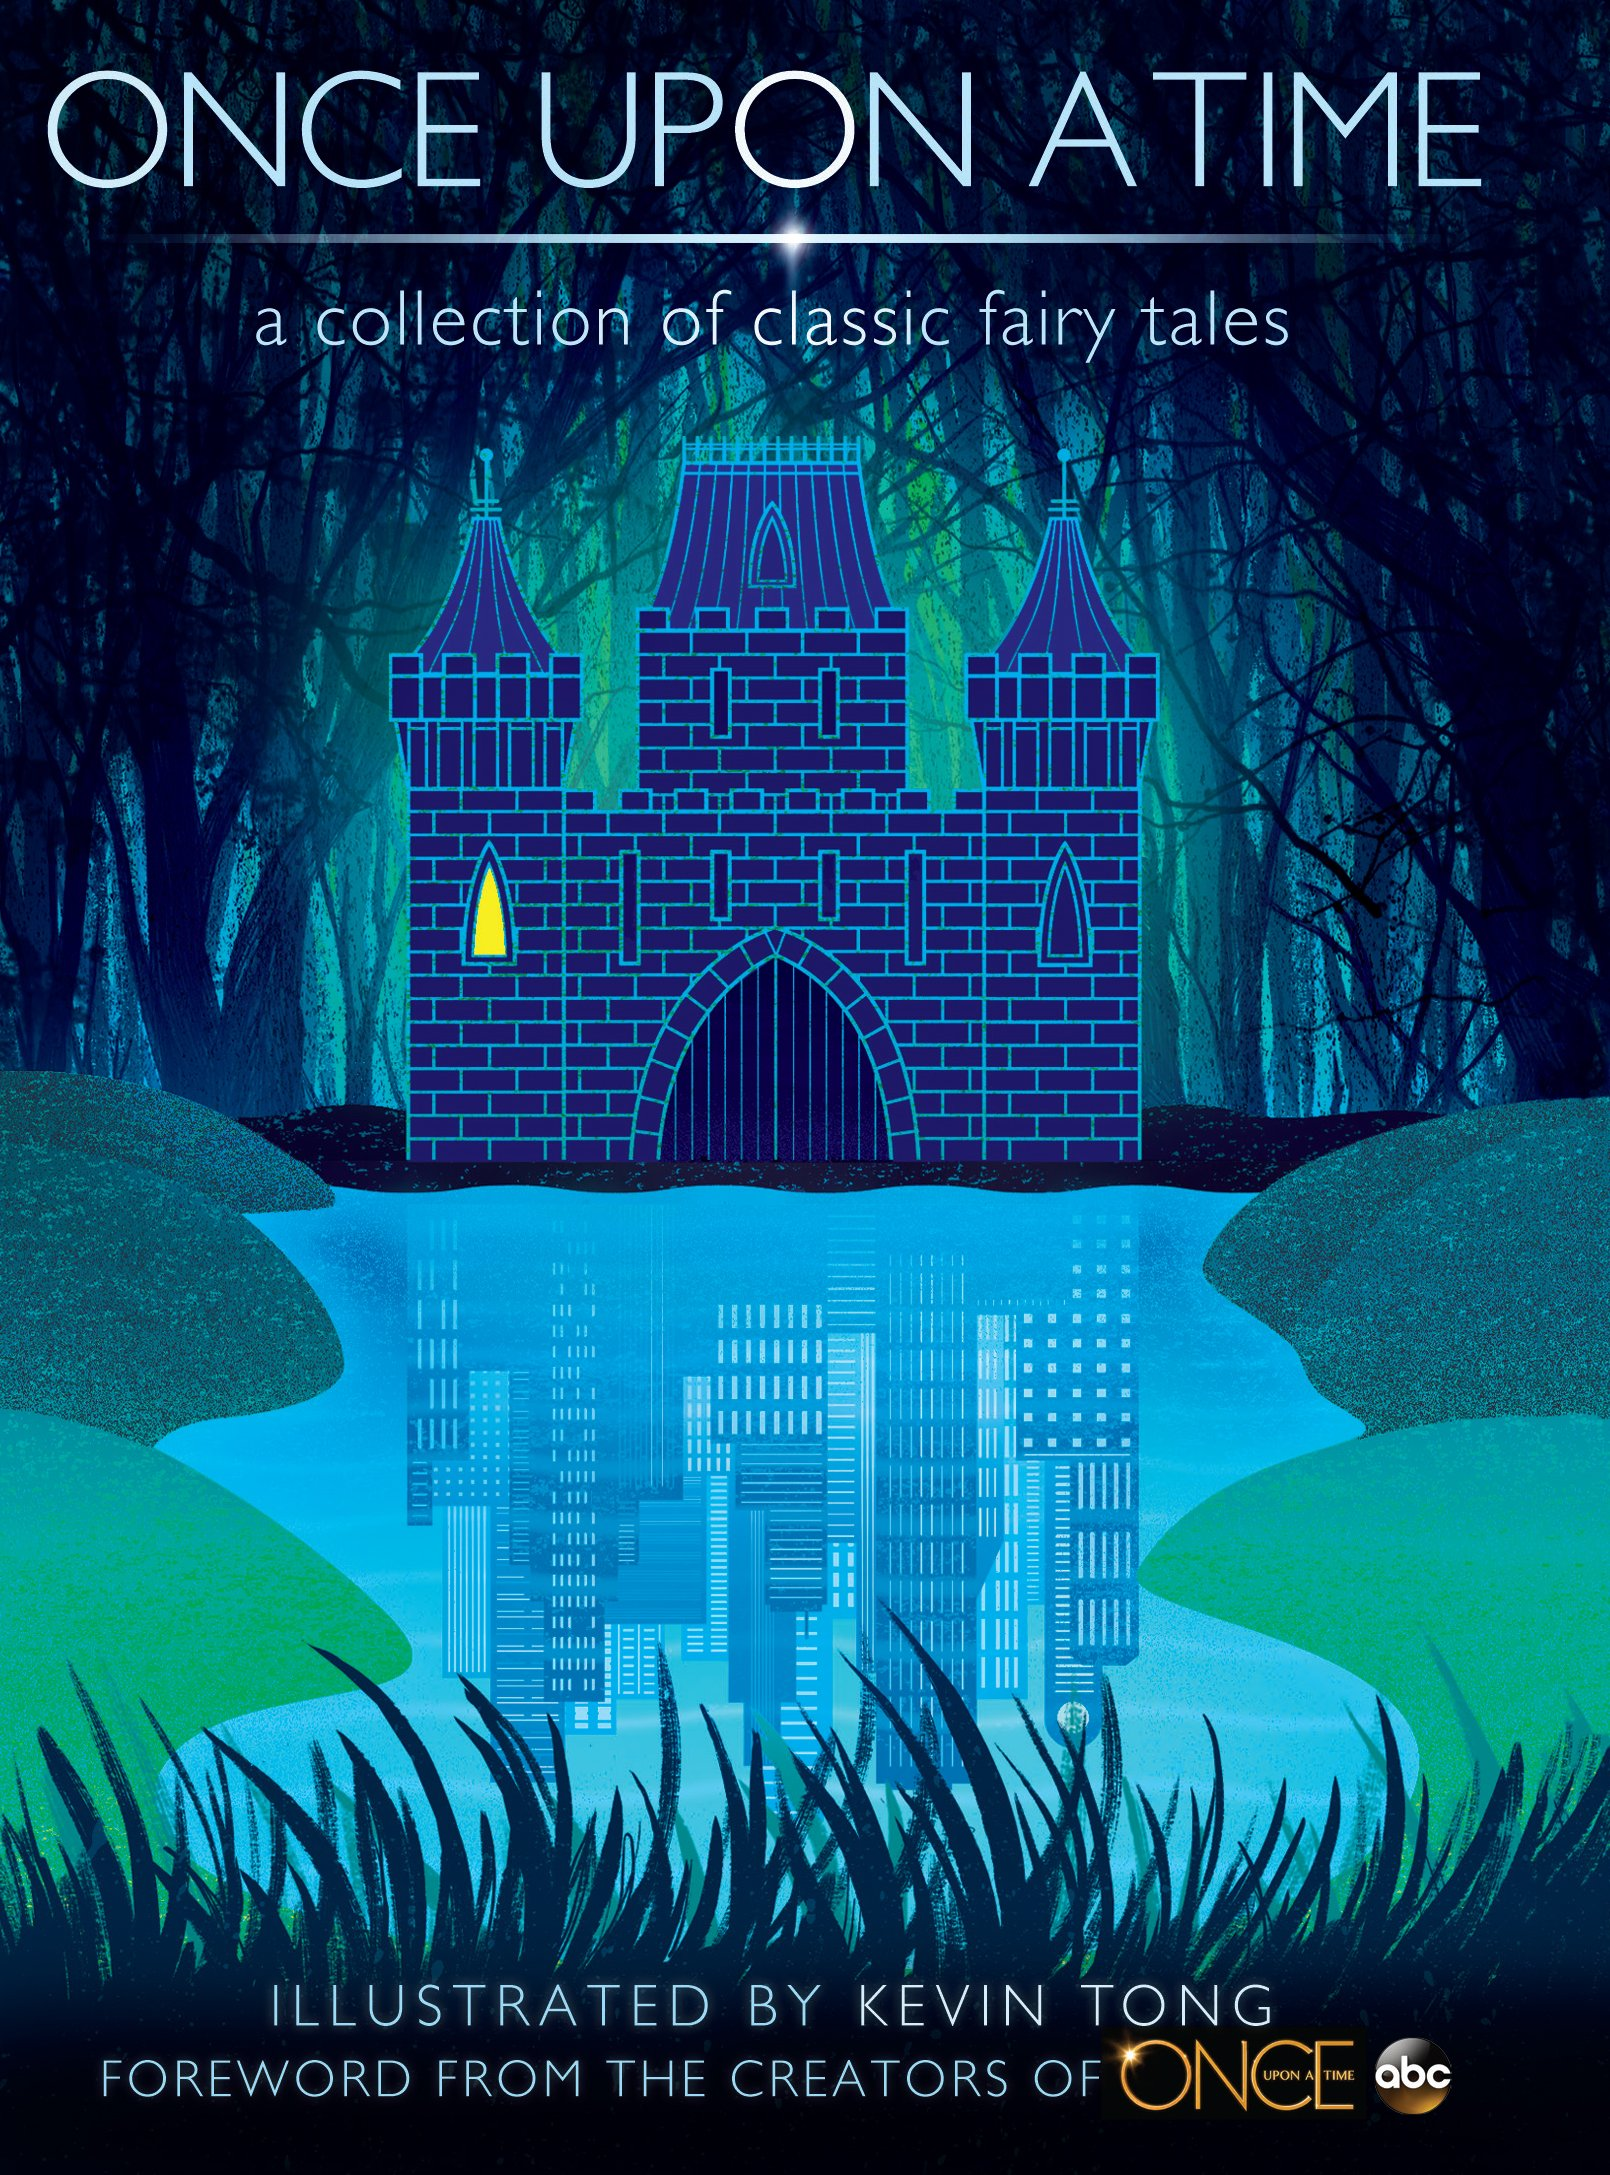 Once Upon a Time: A Collection of Classic Fairytales